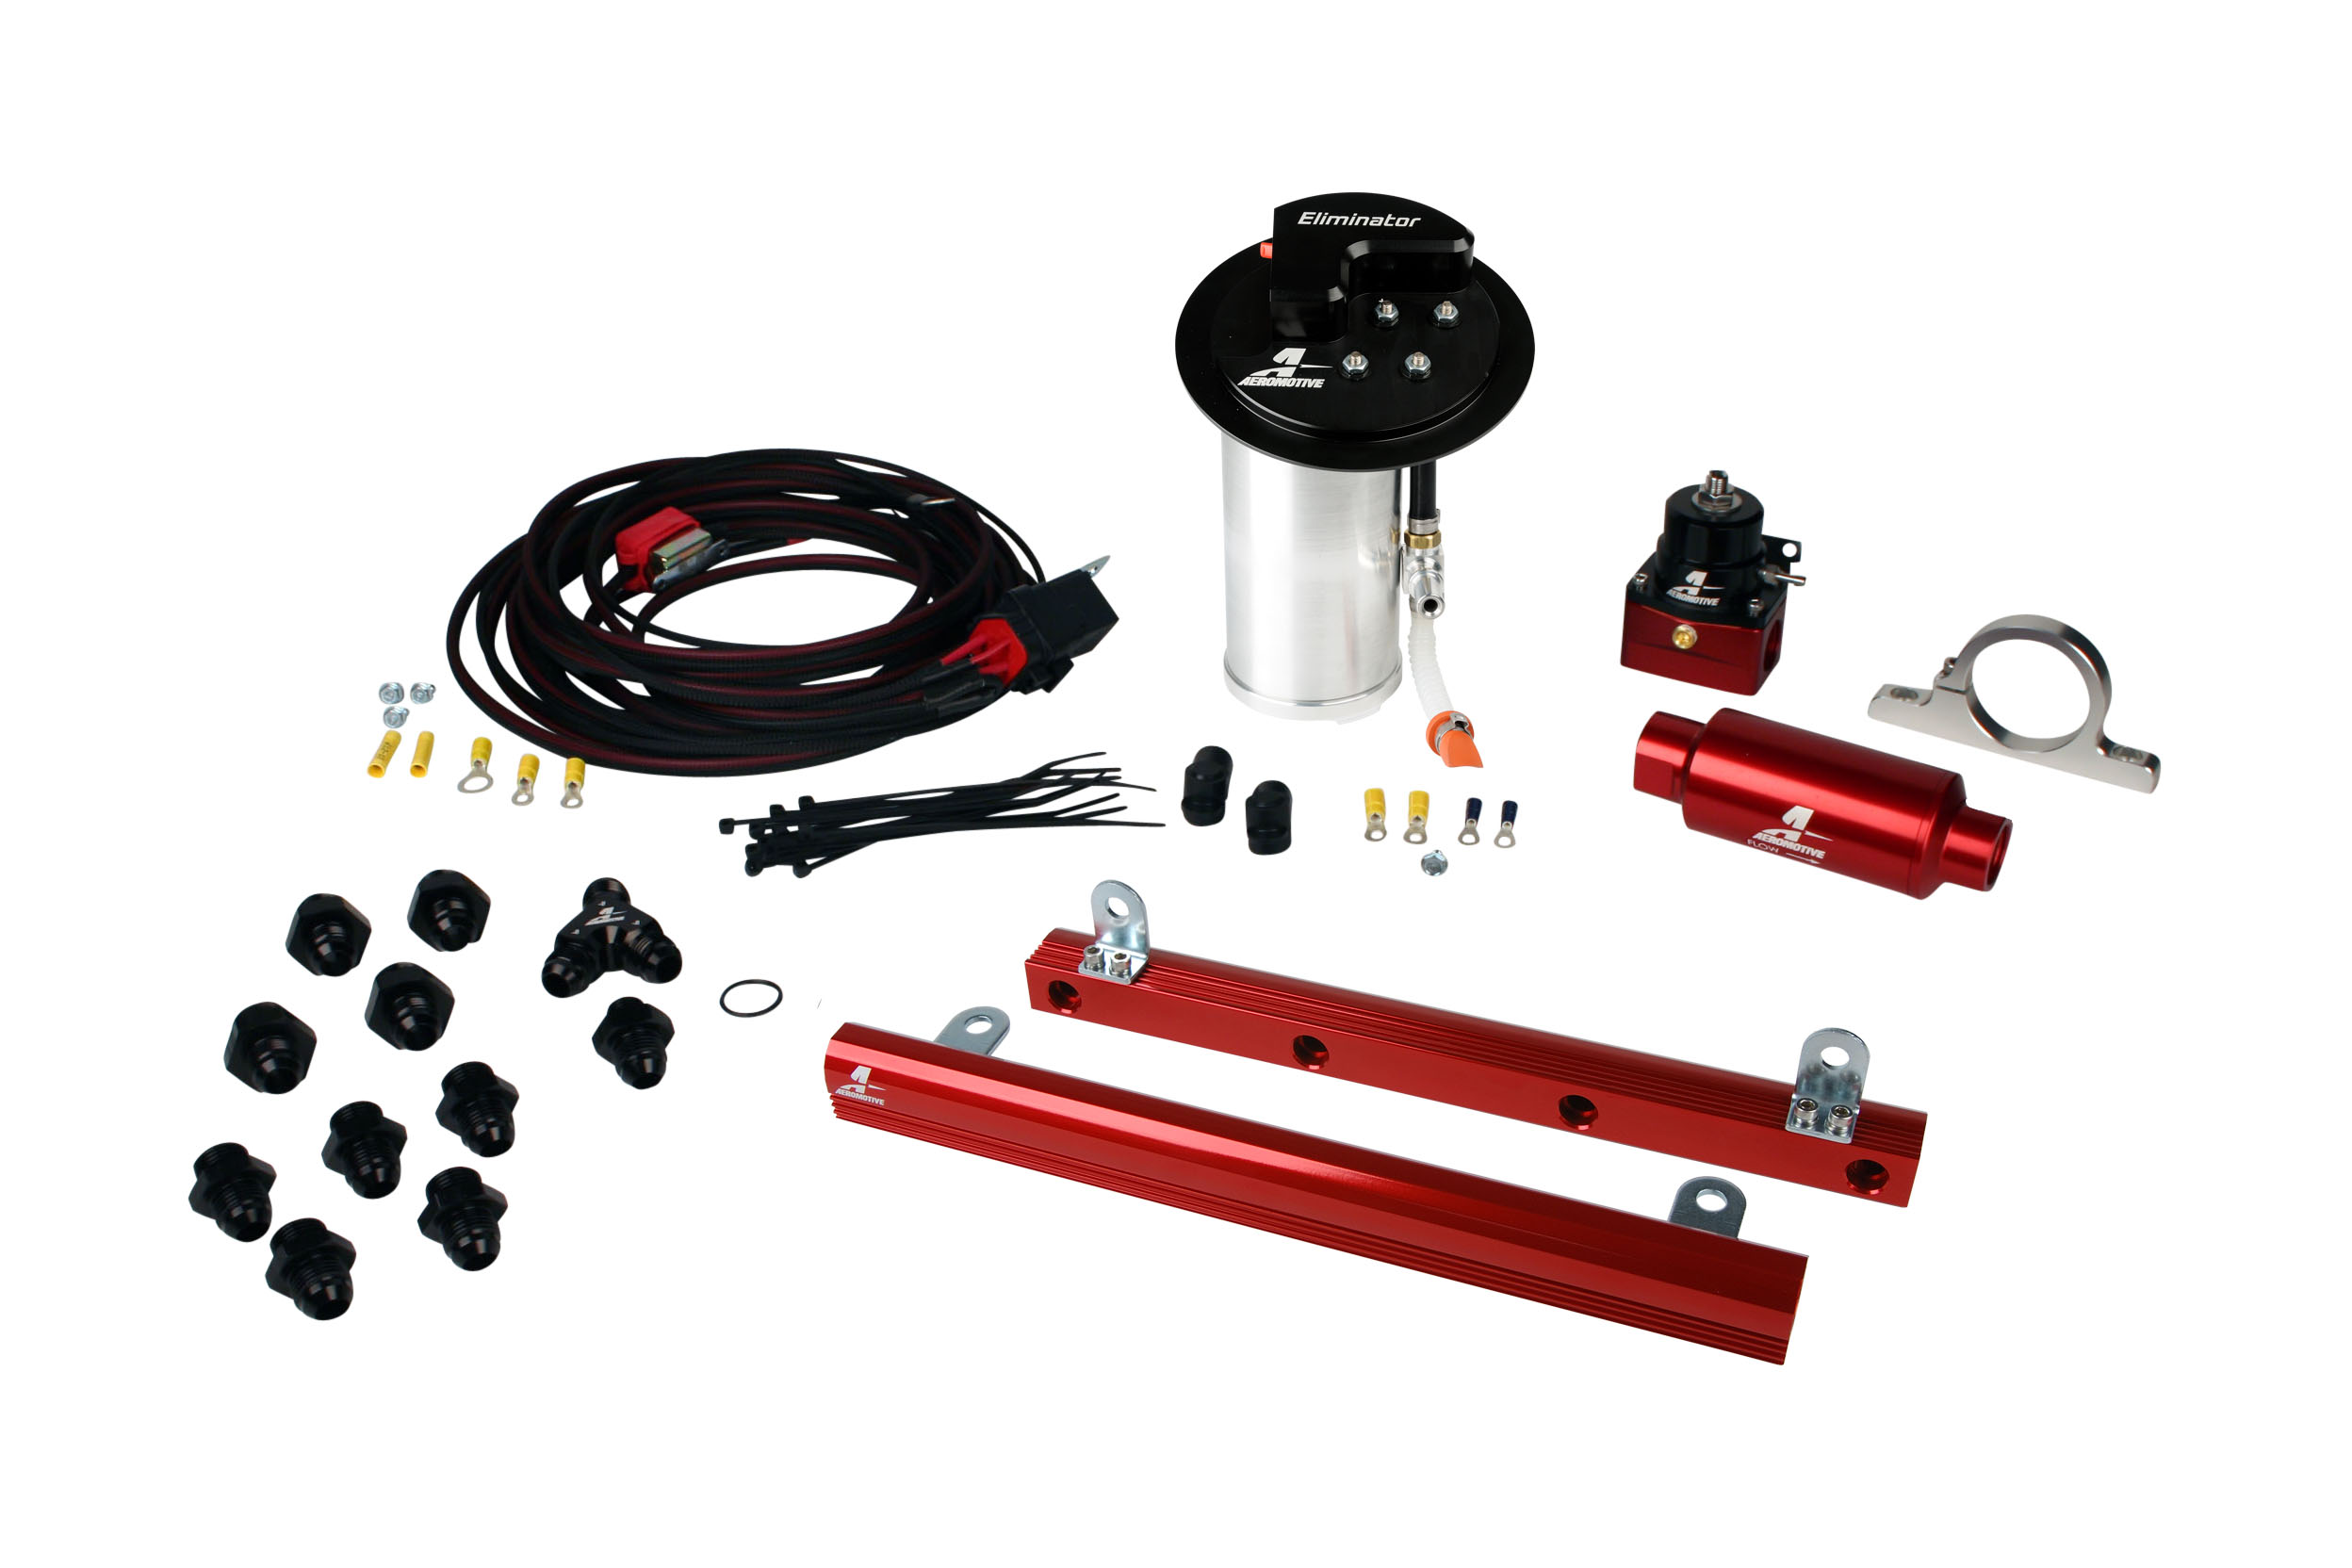 2010-2017 Ford Mustang GT Aeromotive Stealth Eliminator Racing Fuel System w/5.4L 4-V Fuel Rails